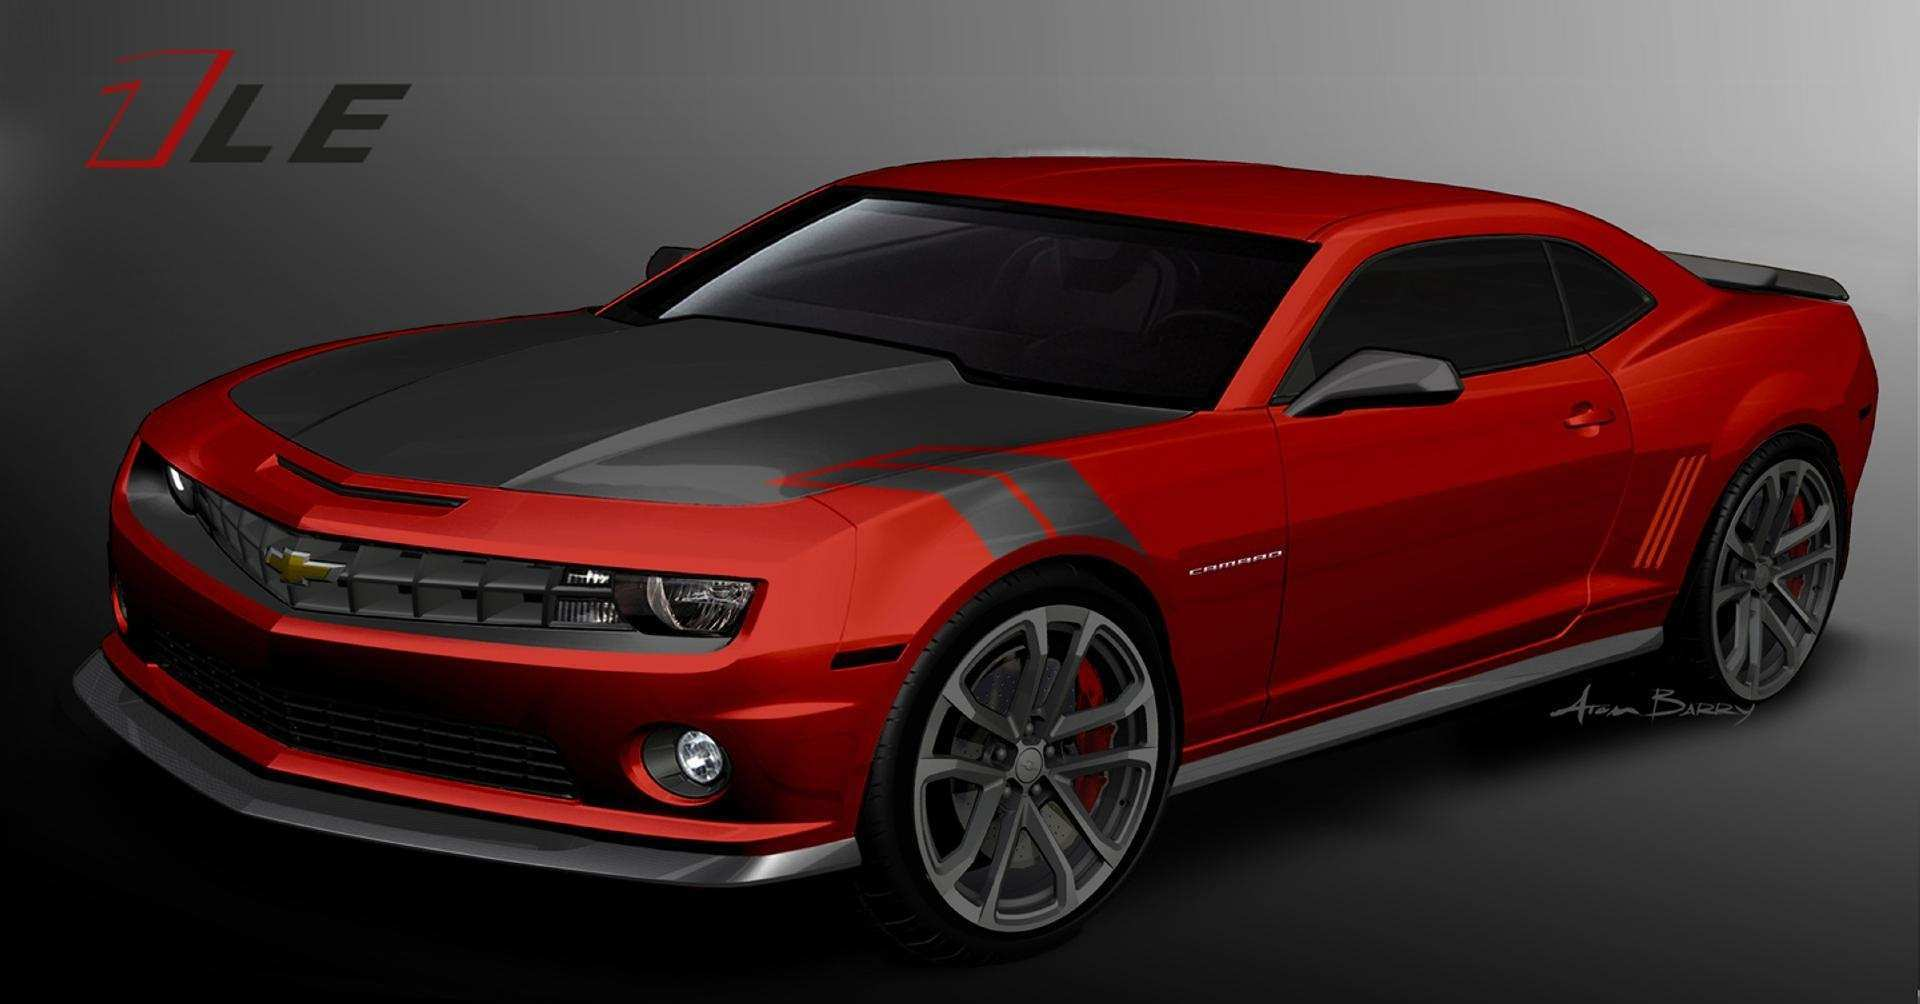 44 Great 2020 Chevrolet Camaro Ss History for 2020 Chevrolet Camaro Ss